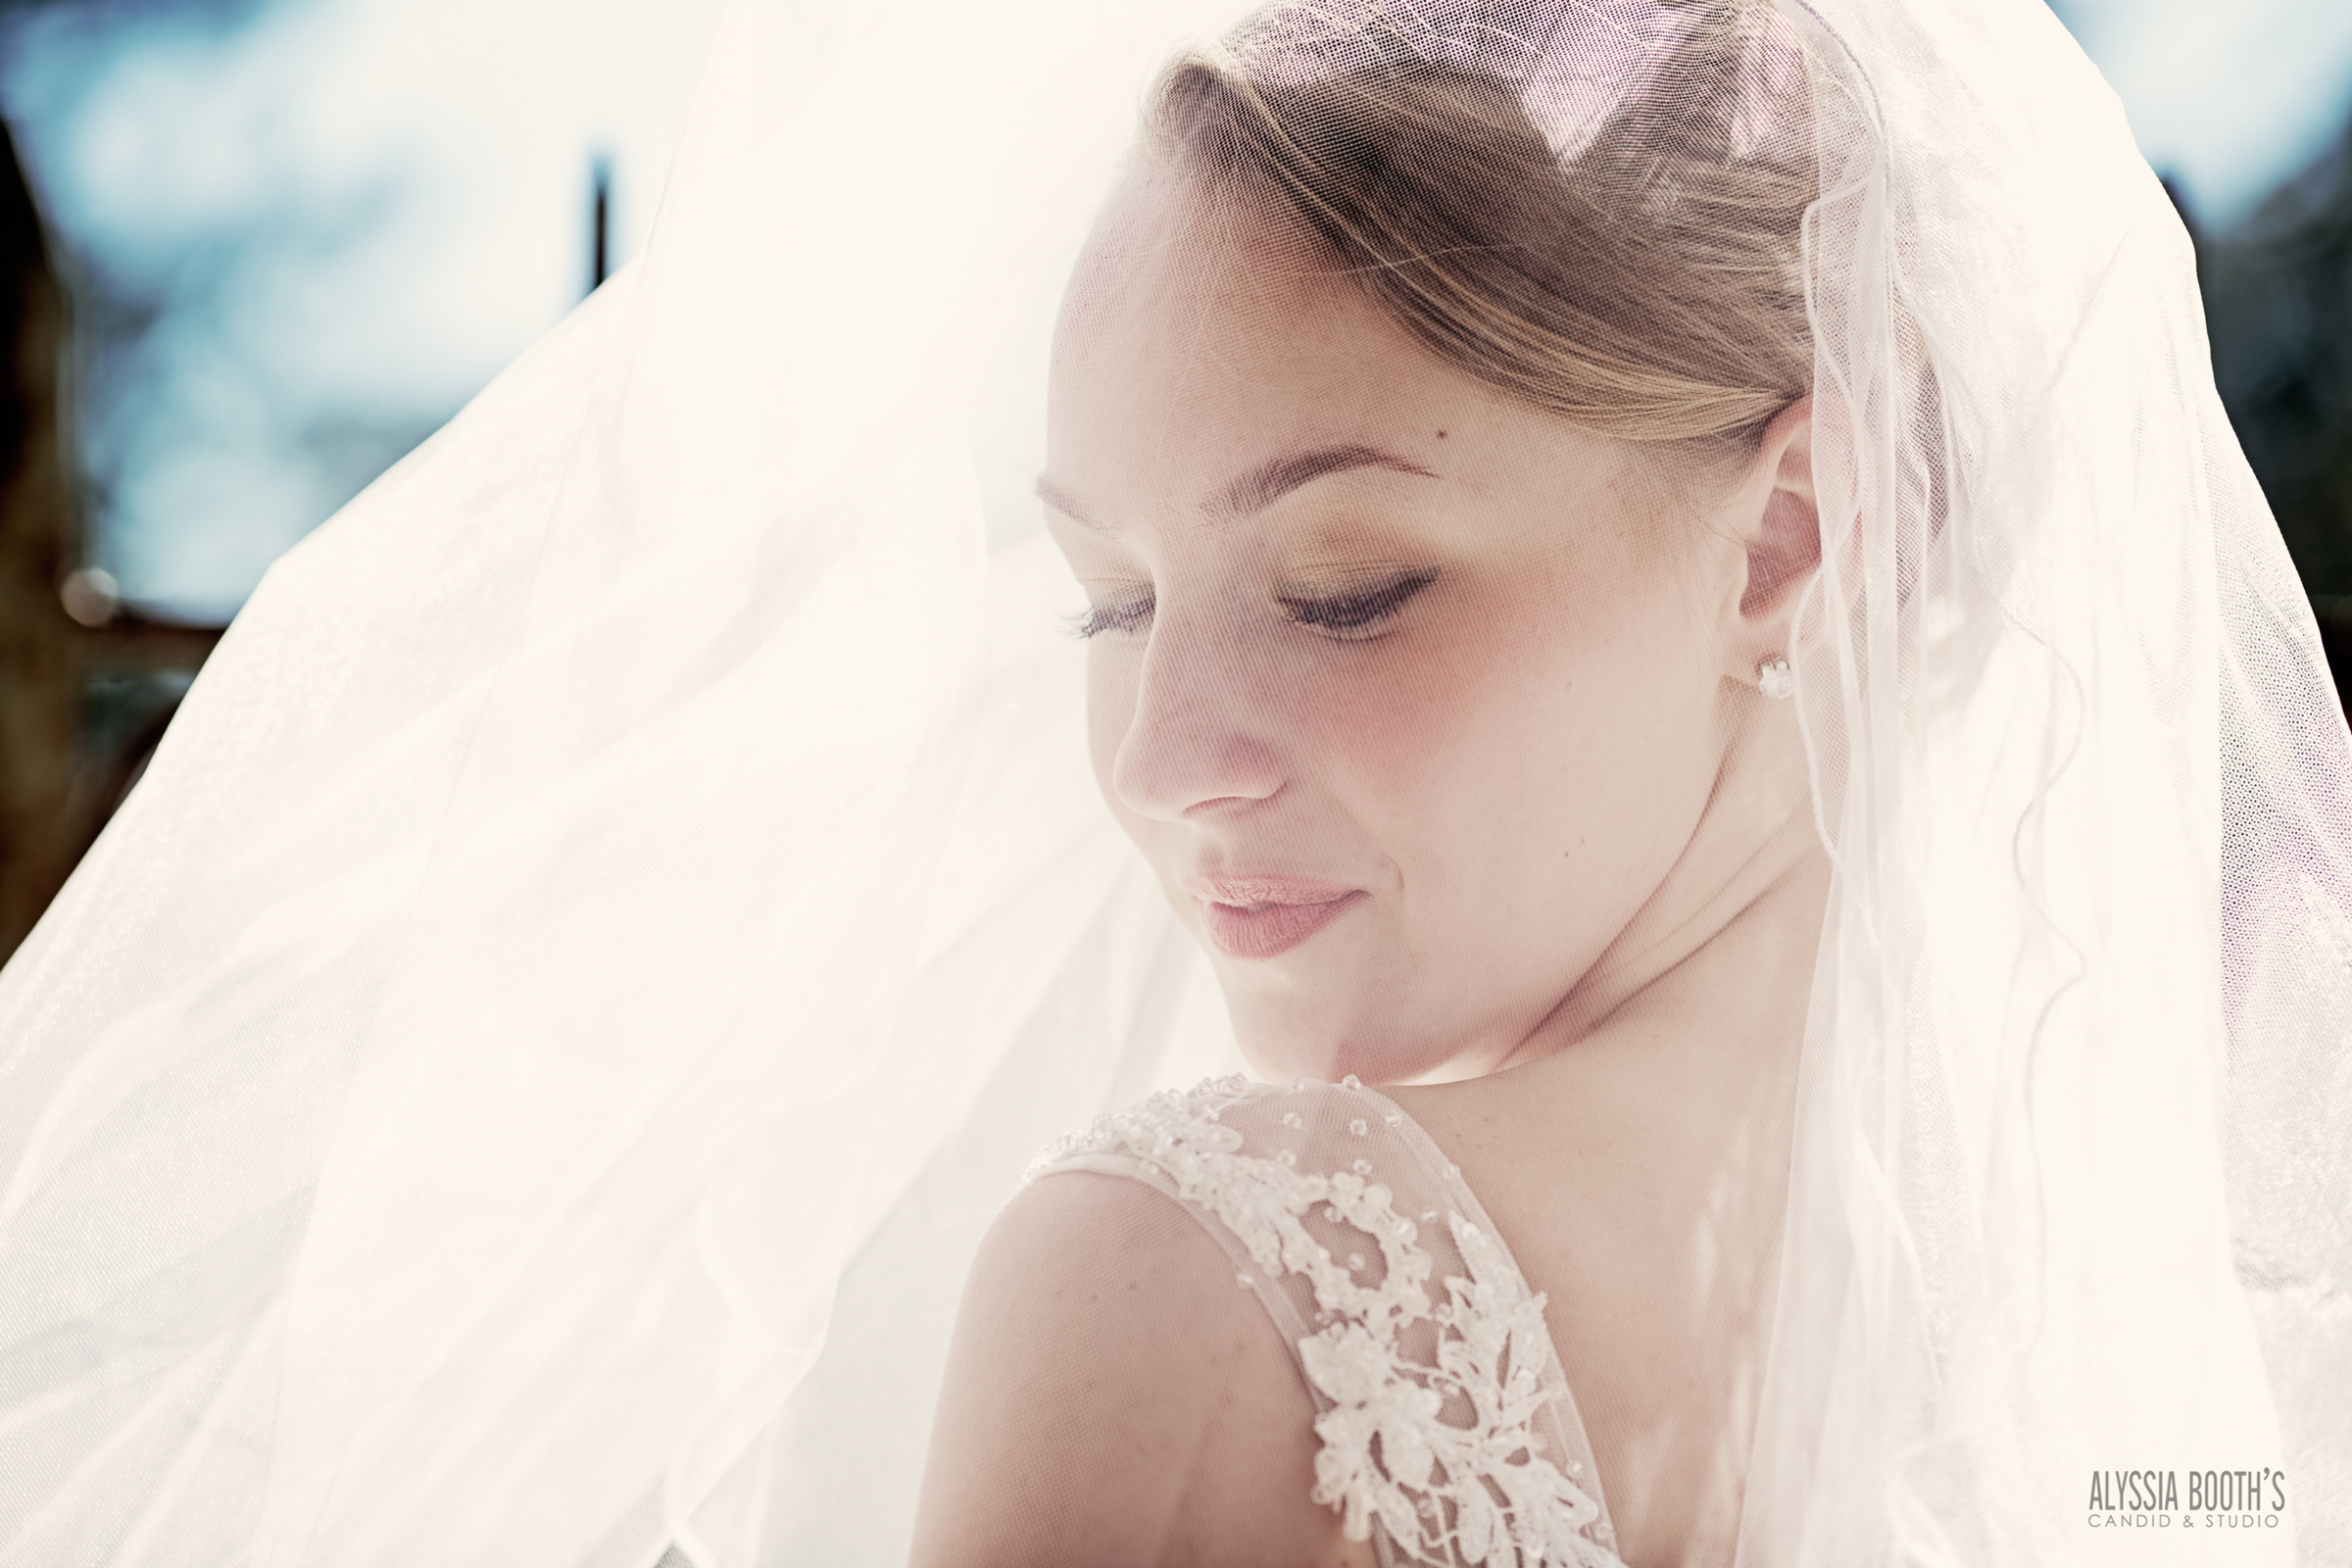 Veiled | Bride Portrait | Alyssia Booth's Candid & Studio | Michigan Wedding Photography